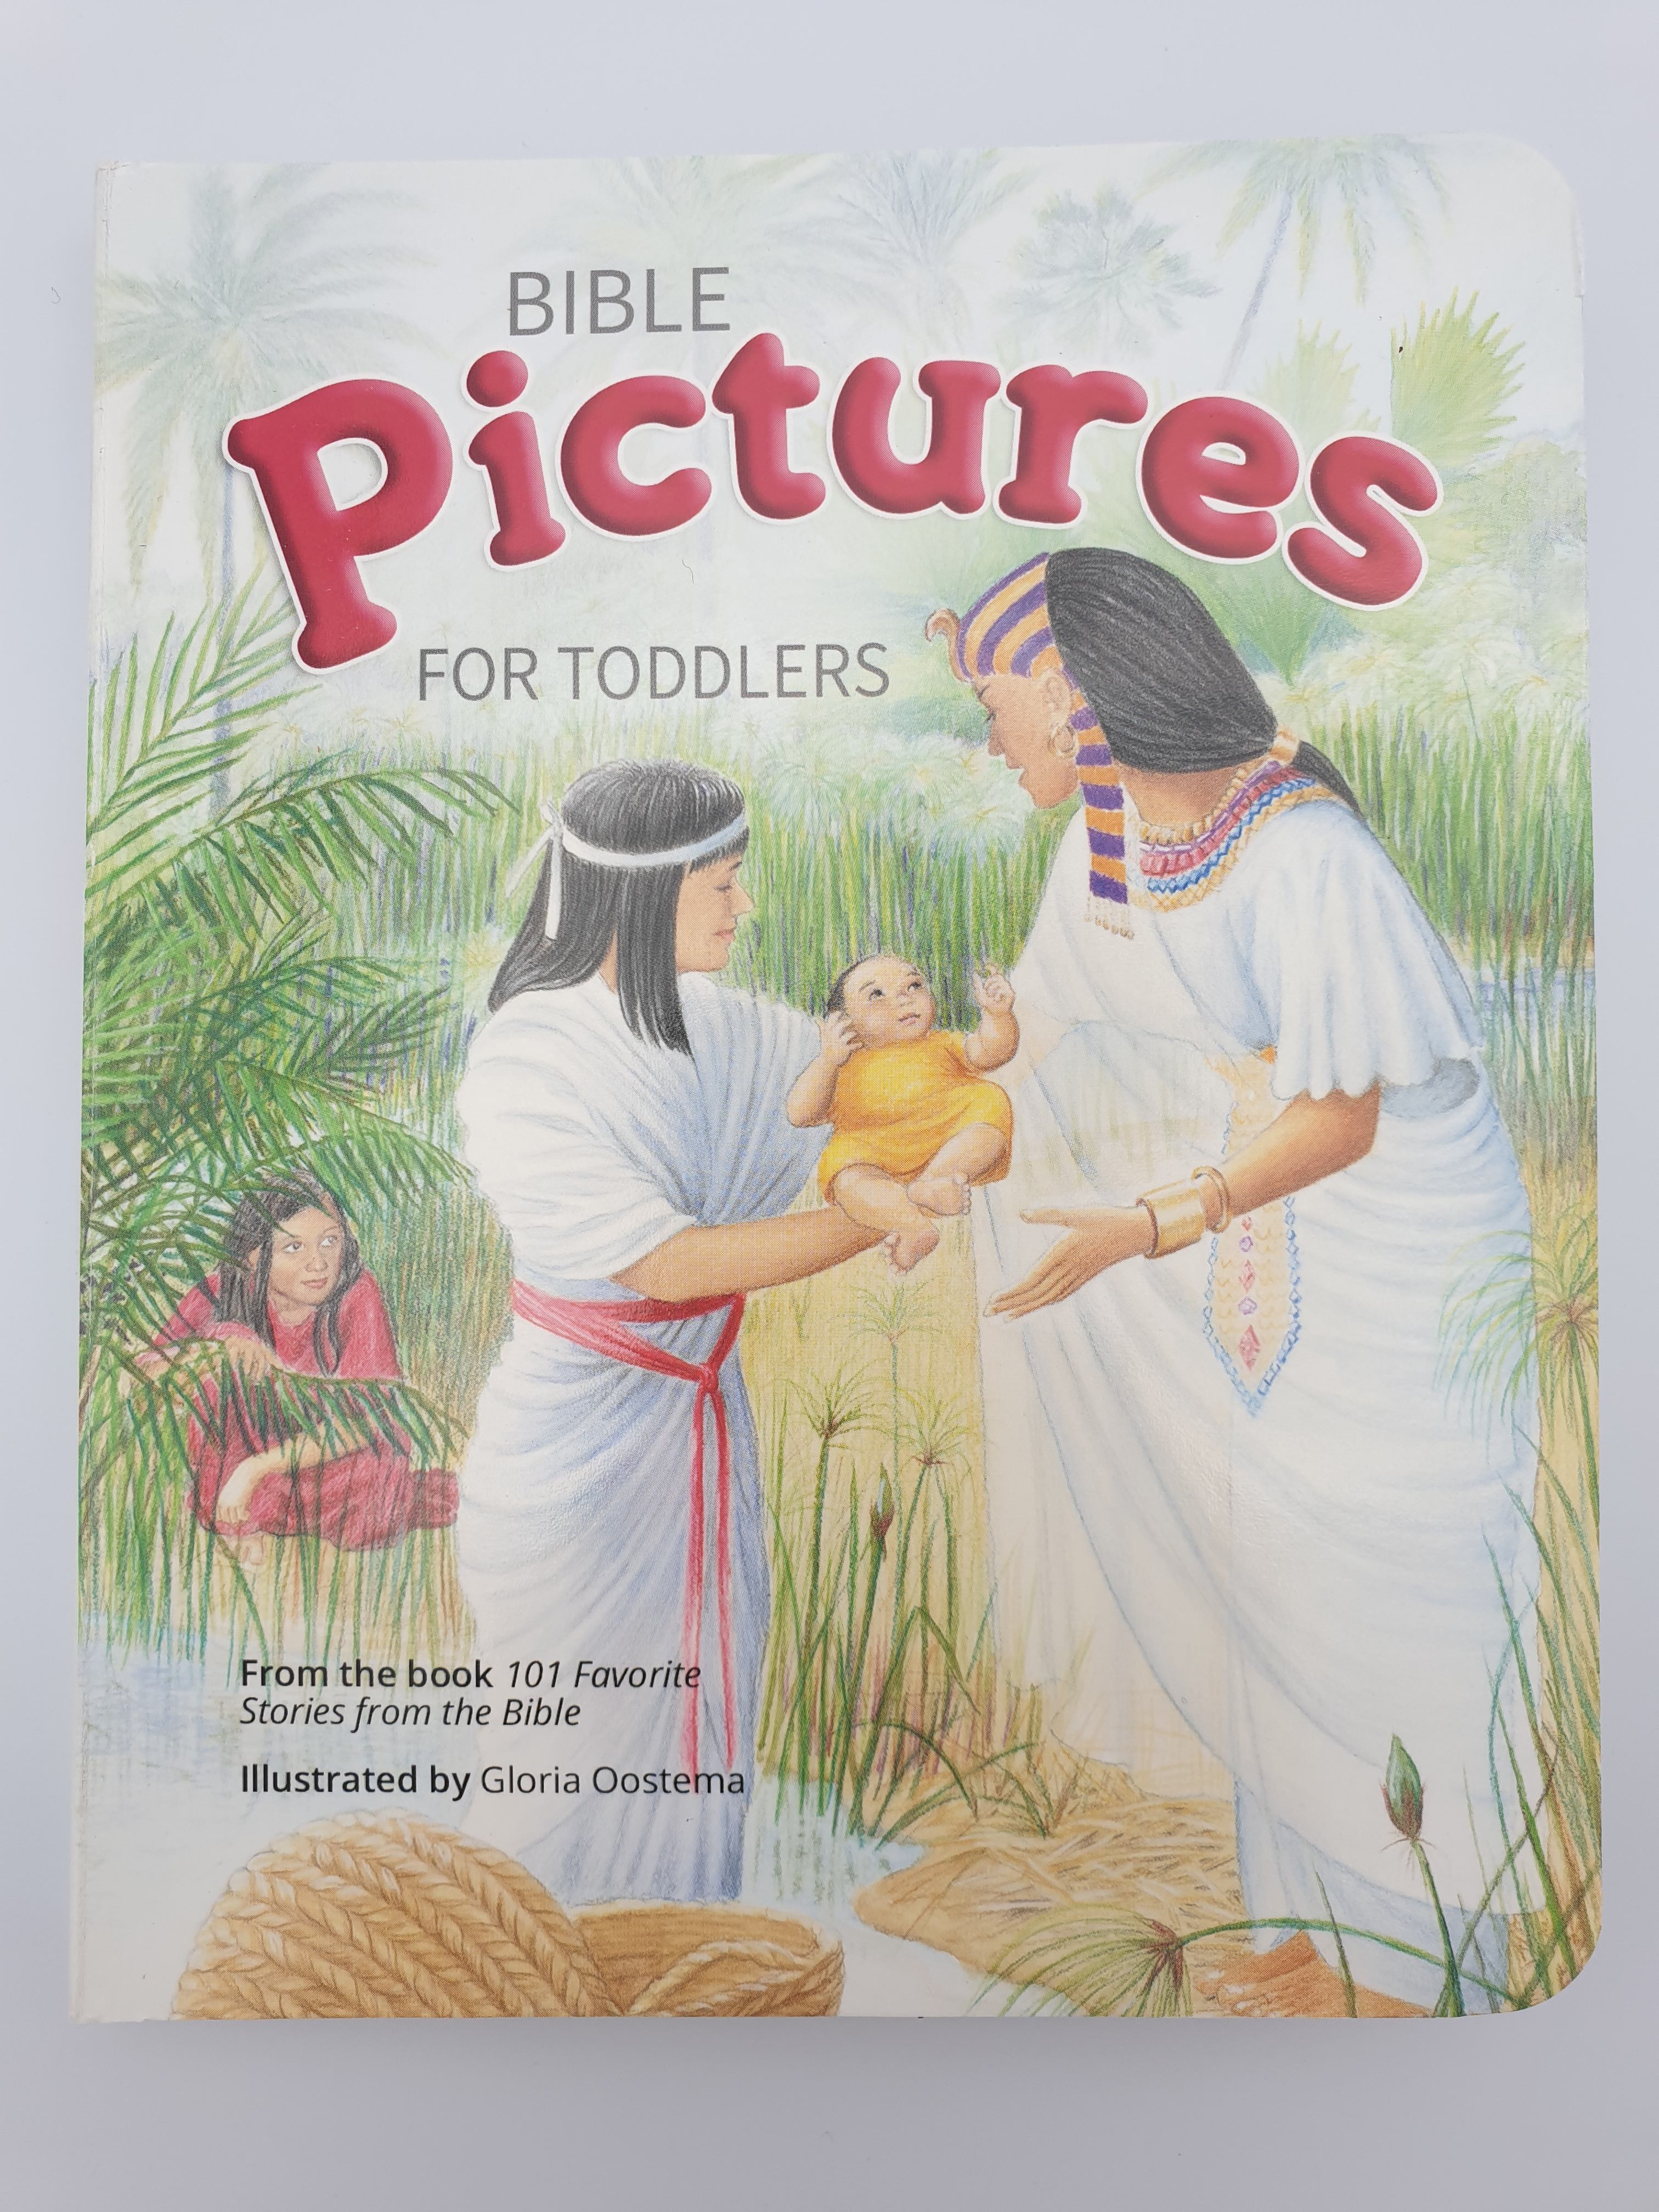 Bible Pictures for toddlers - From the book 101 Favorite Stories from the Bible 8.jpg